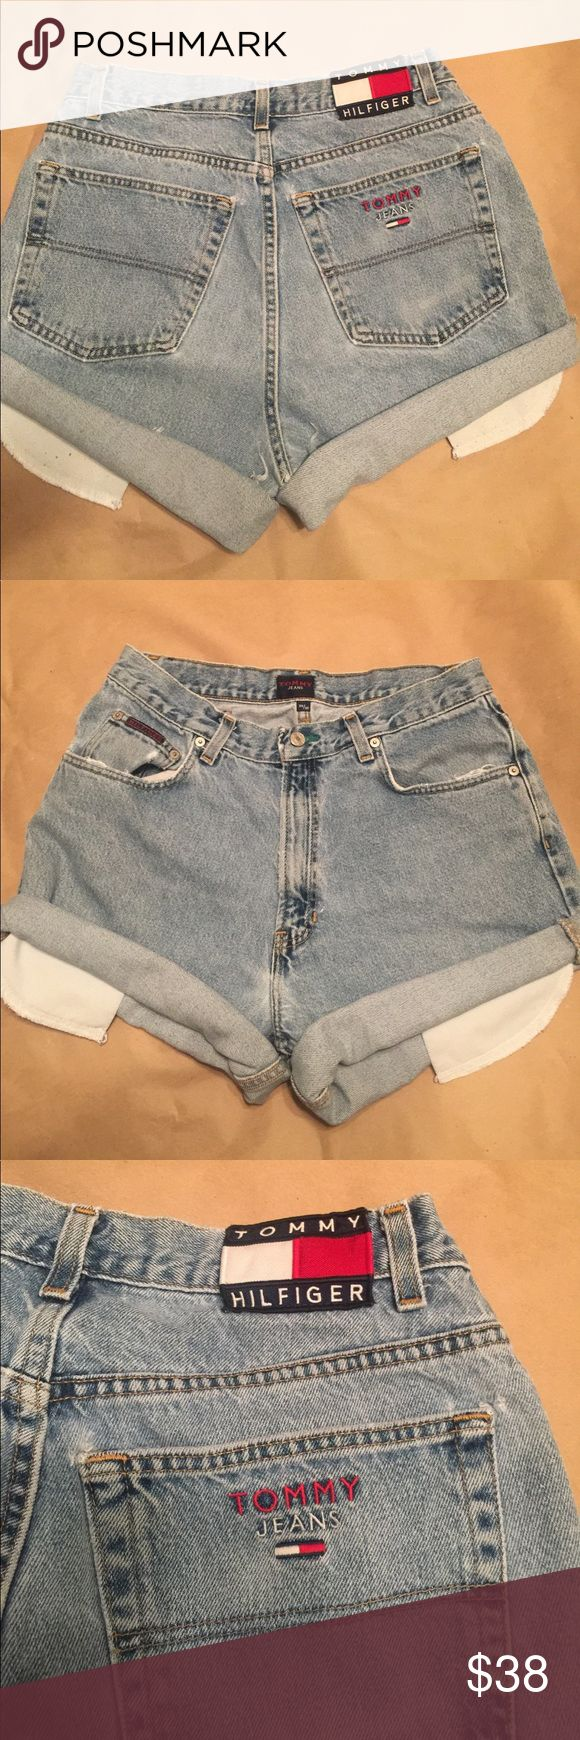 Vintage Tommy Hilfiger cutoff Jean shorts waist 32 Super rare and aaaaamazing condition vintage Tommy Hilfiger Jean shorts. Cutoff Tommy jeans. Back patch and stitching are impeccable no flaws. Just not my size price is firm, ships next day  Tommy Hilfiger Shorts Jean Shorts